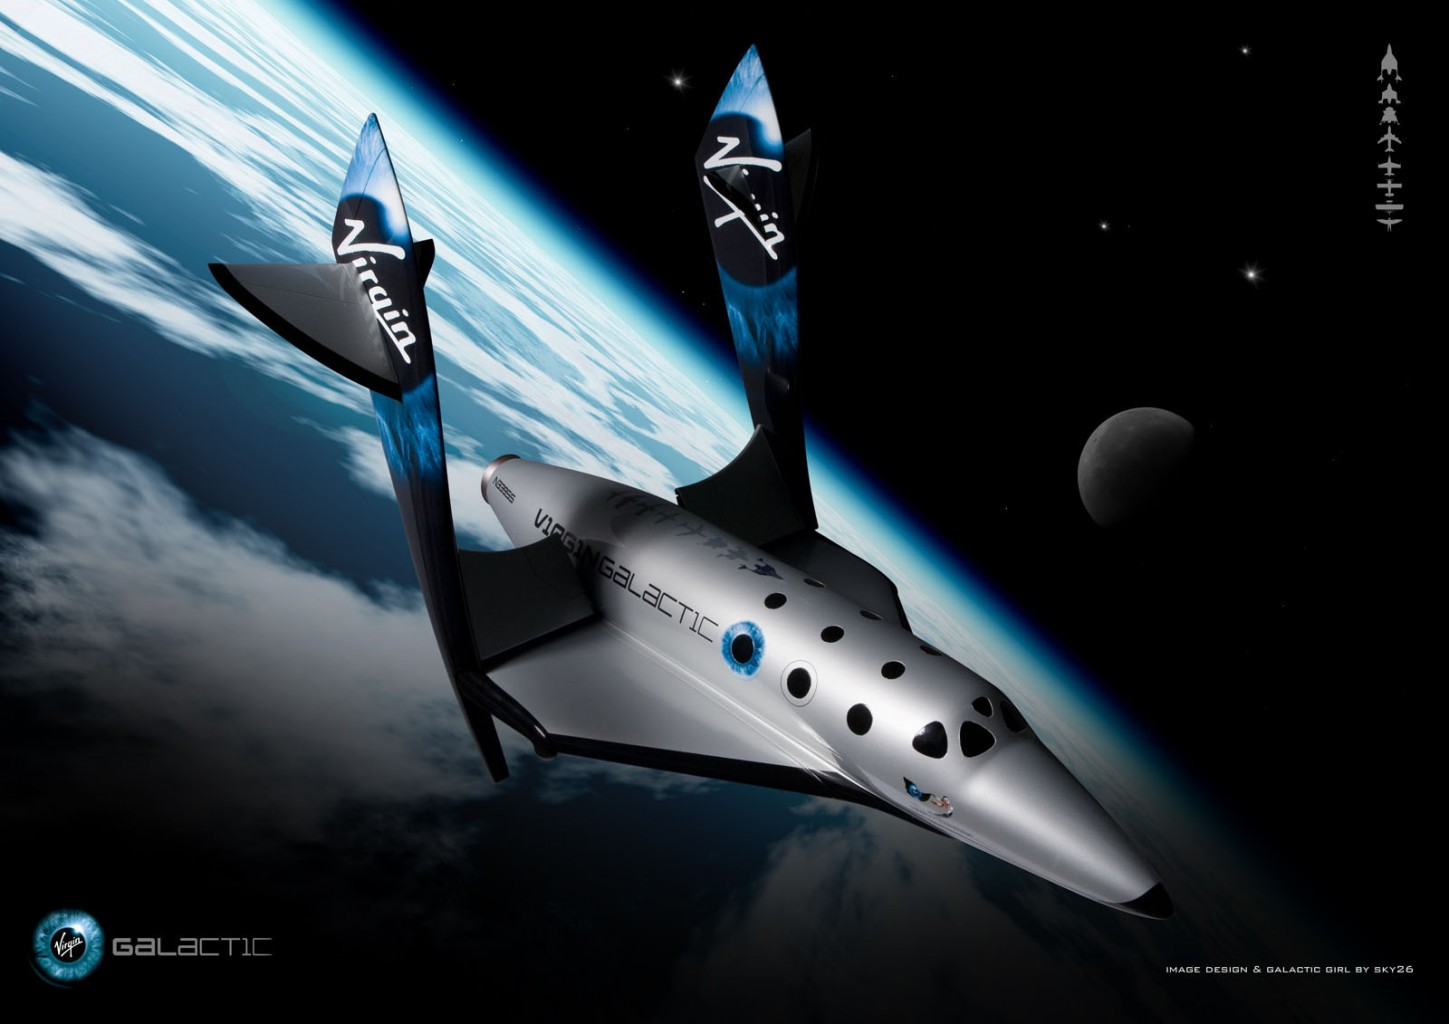 original_SpaceShipTwo-1600